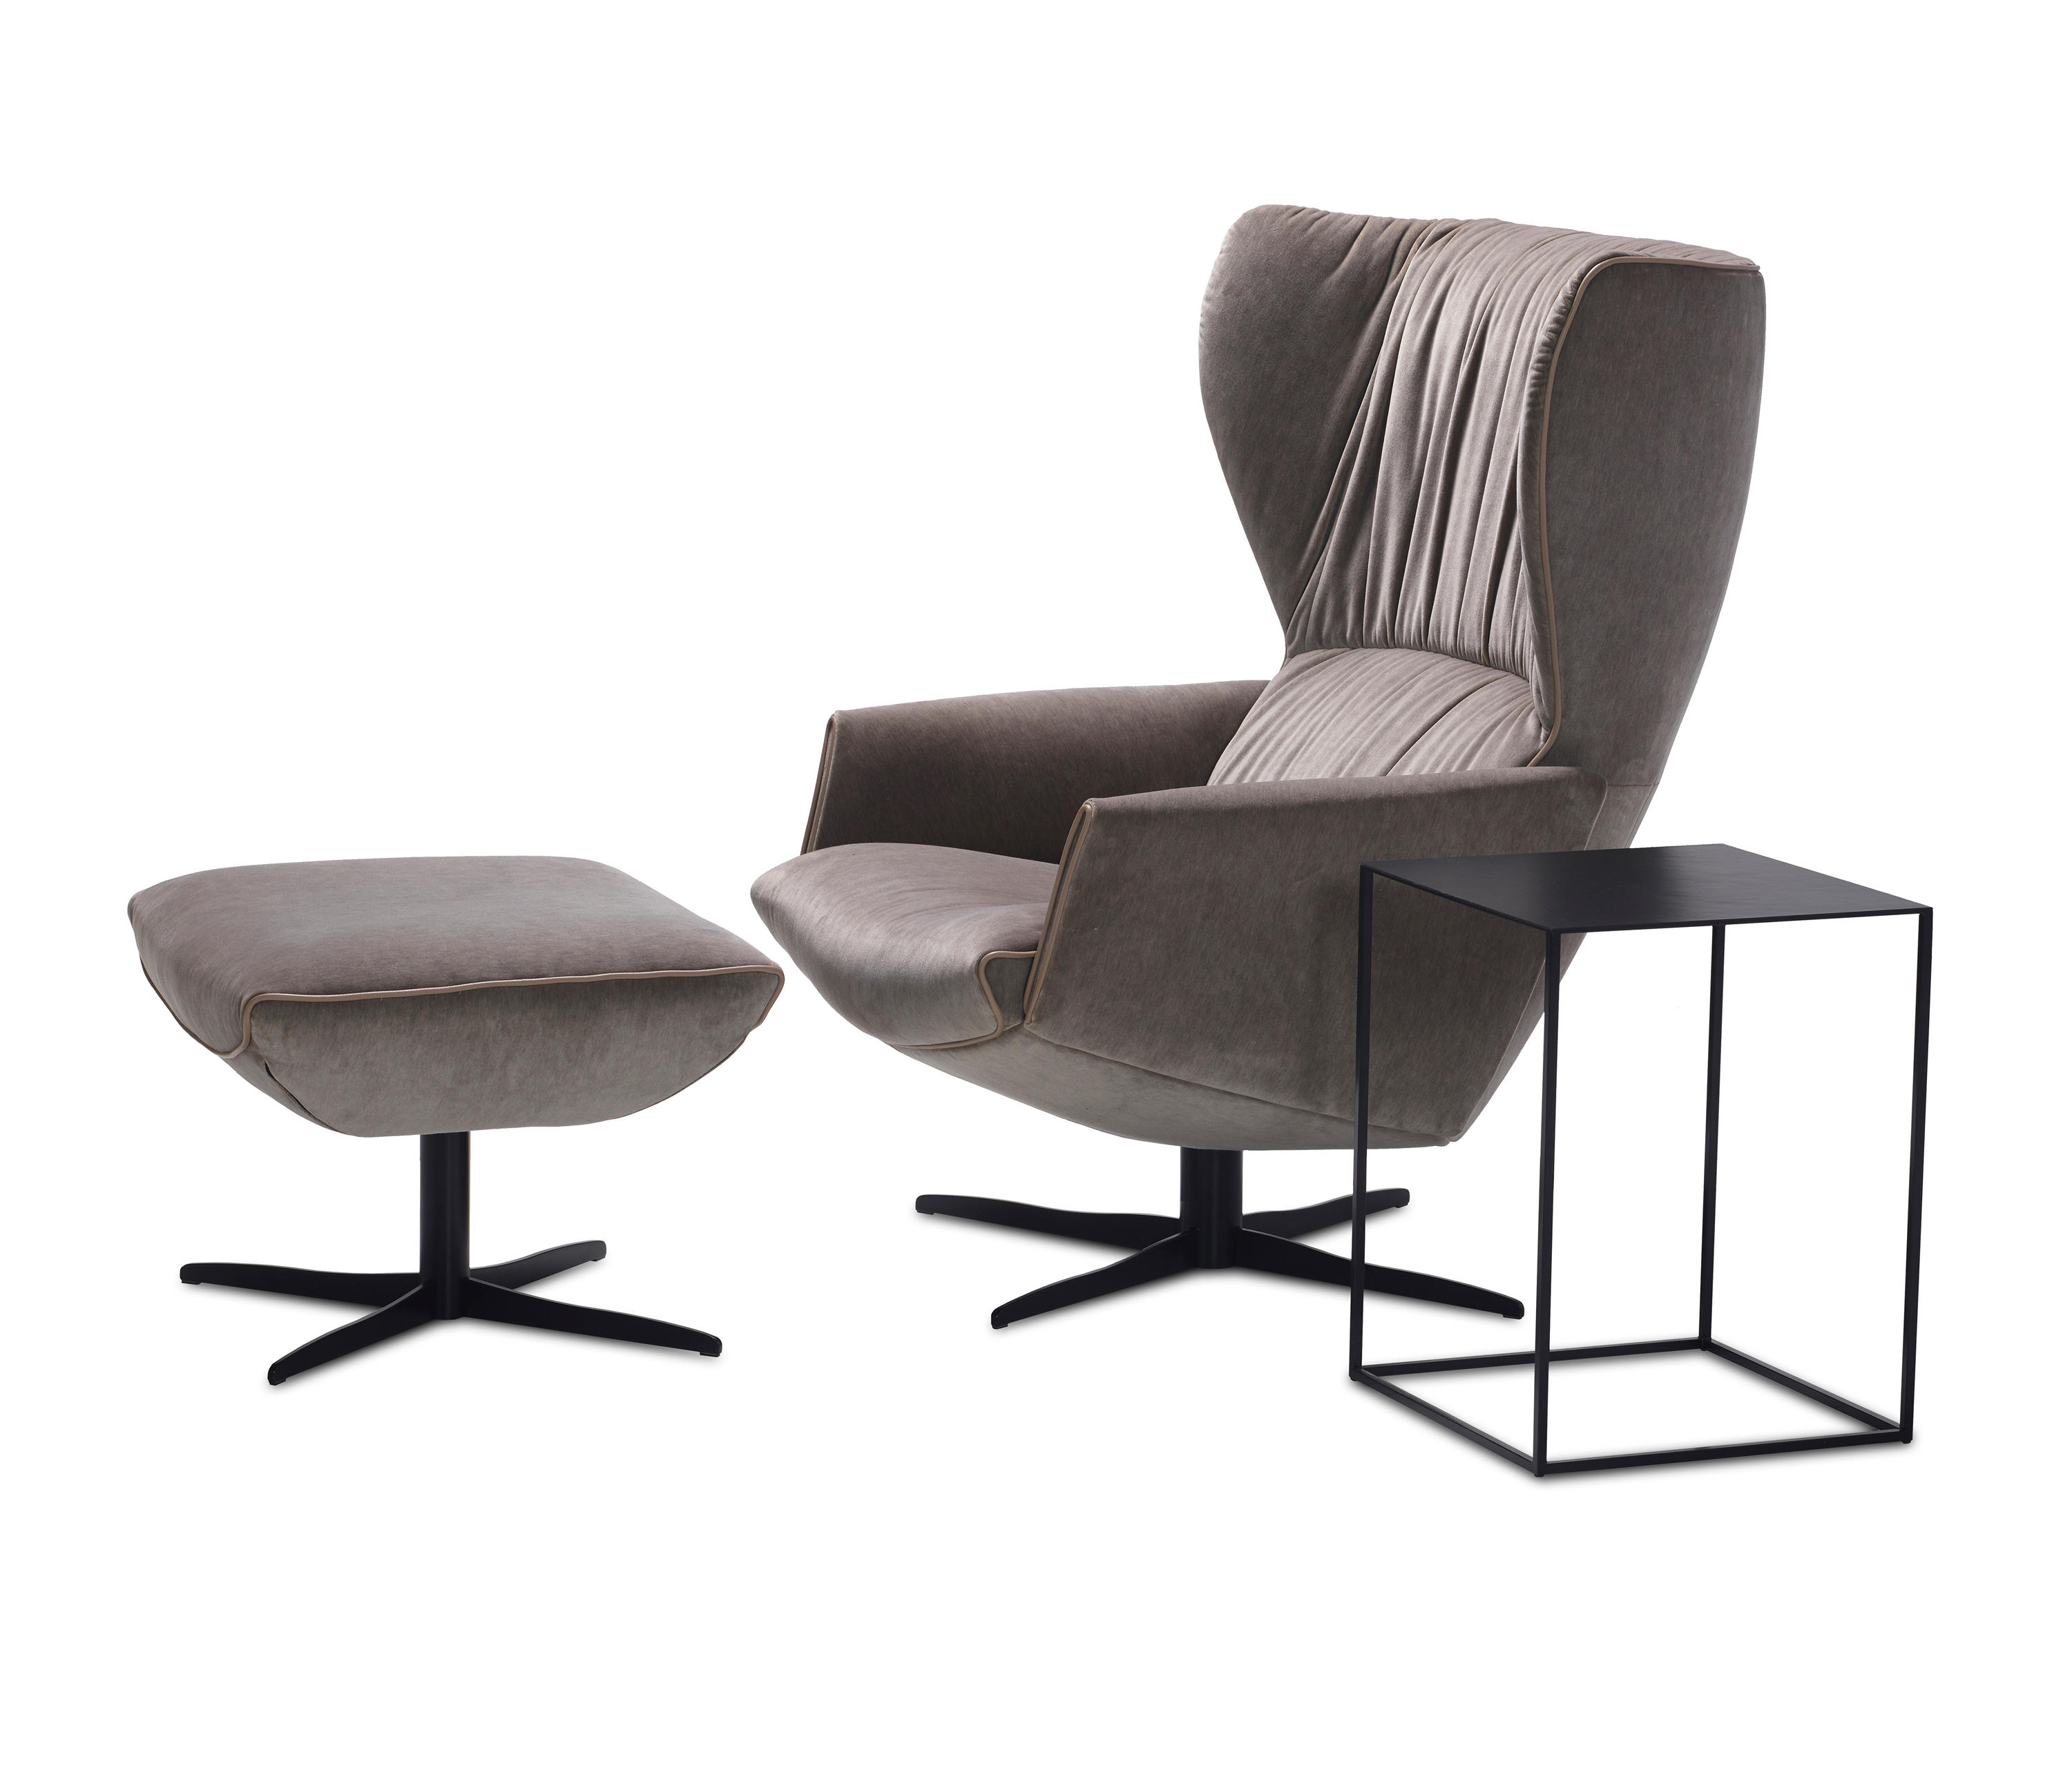 rapsody lounge armchair by jori rapsody lounge armchair by jori. rapsody lounge armchair  lounge chairs from jori  architonic